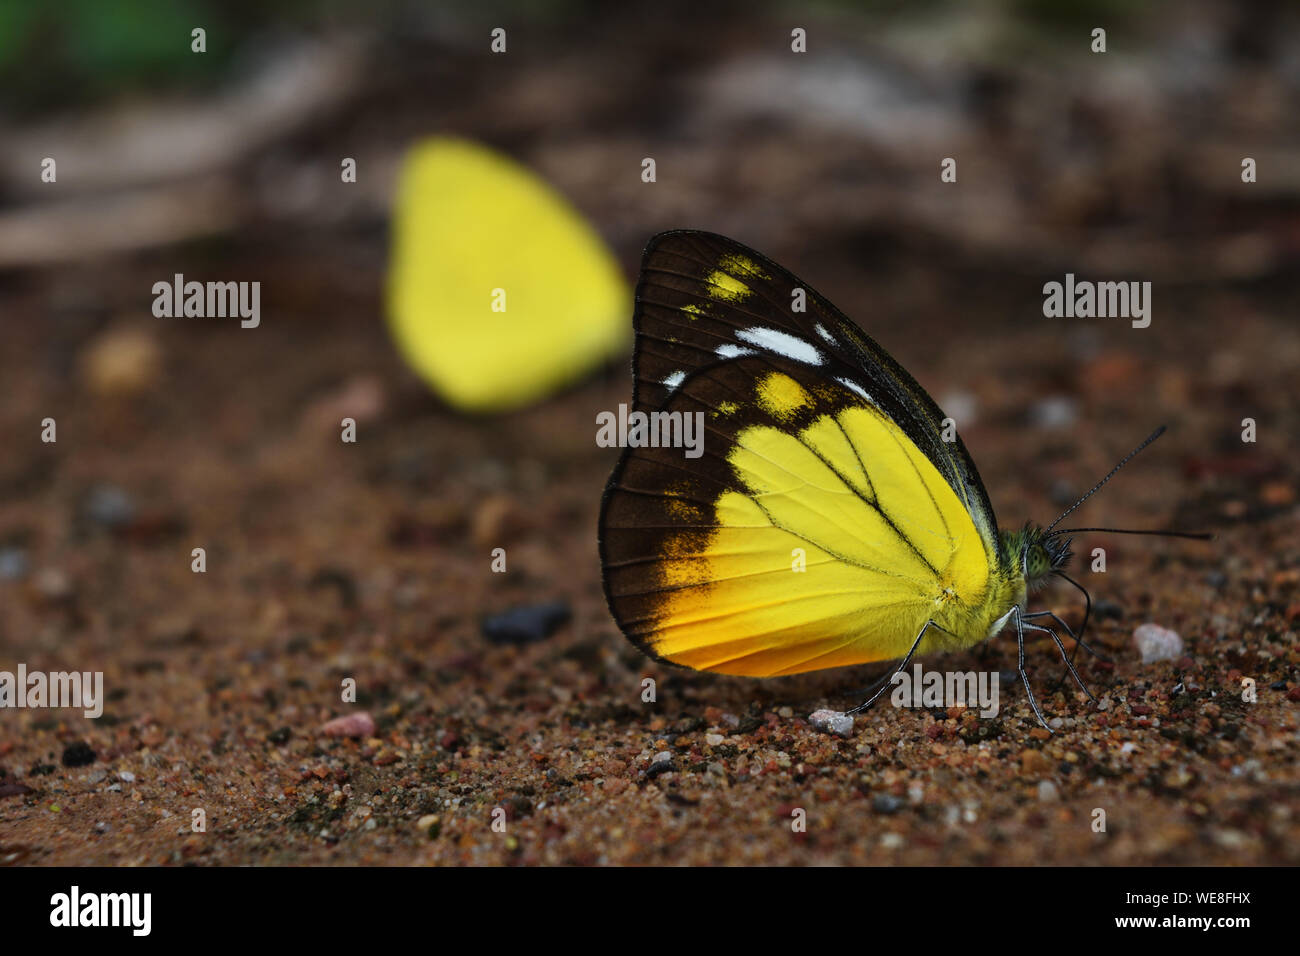 Sưu tập Bộ cánh vẩy 2 - Page 81 Orange-gull-butterfly-cepora-judith-standing-on-dirt-land-black-pattern-with-yellow-and-orange-color-on-white-wing-of-tropical-insect-thailand-WE8FHX